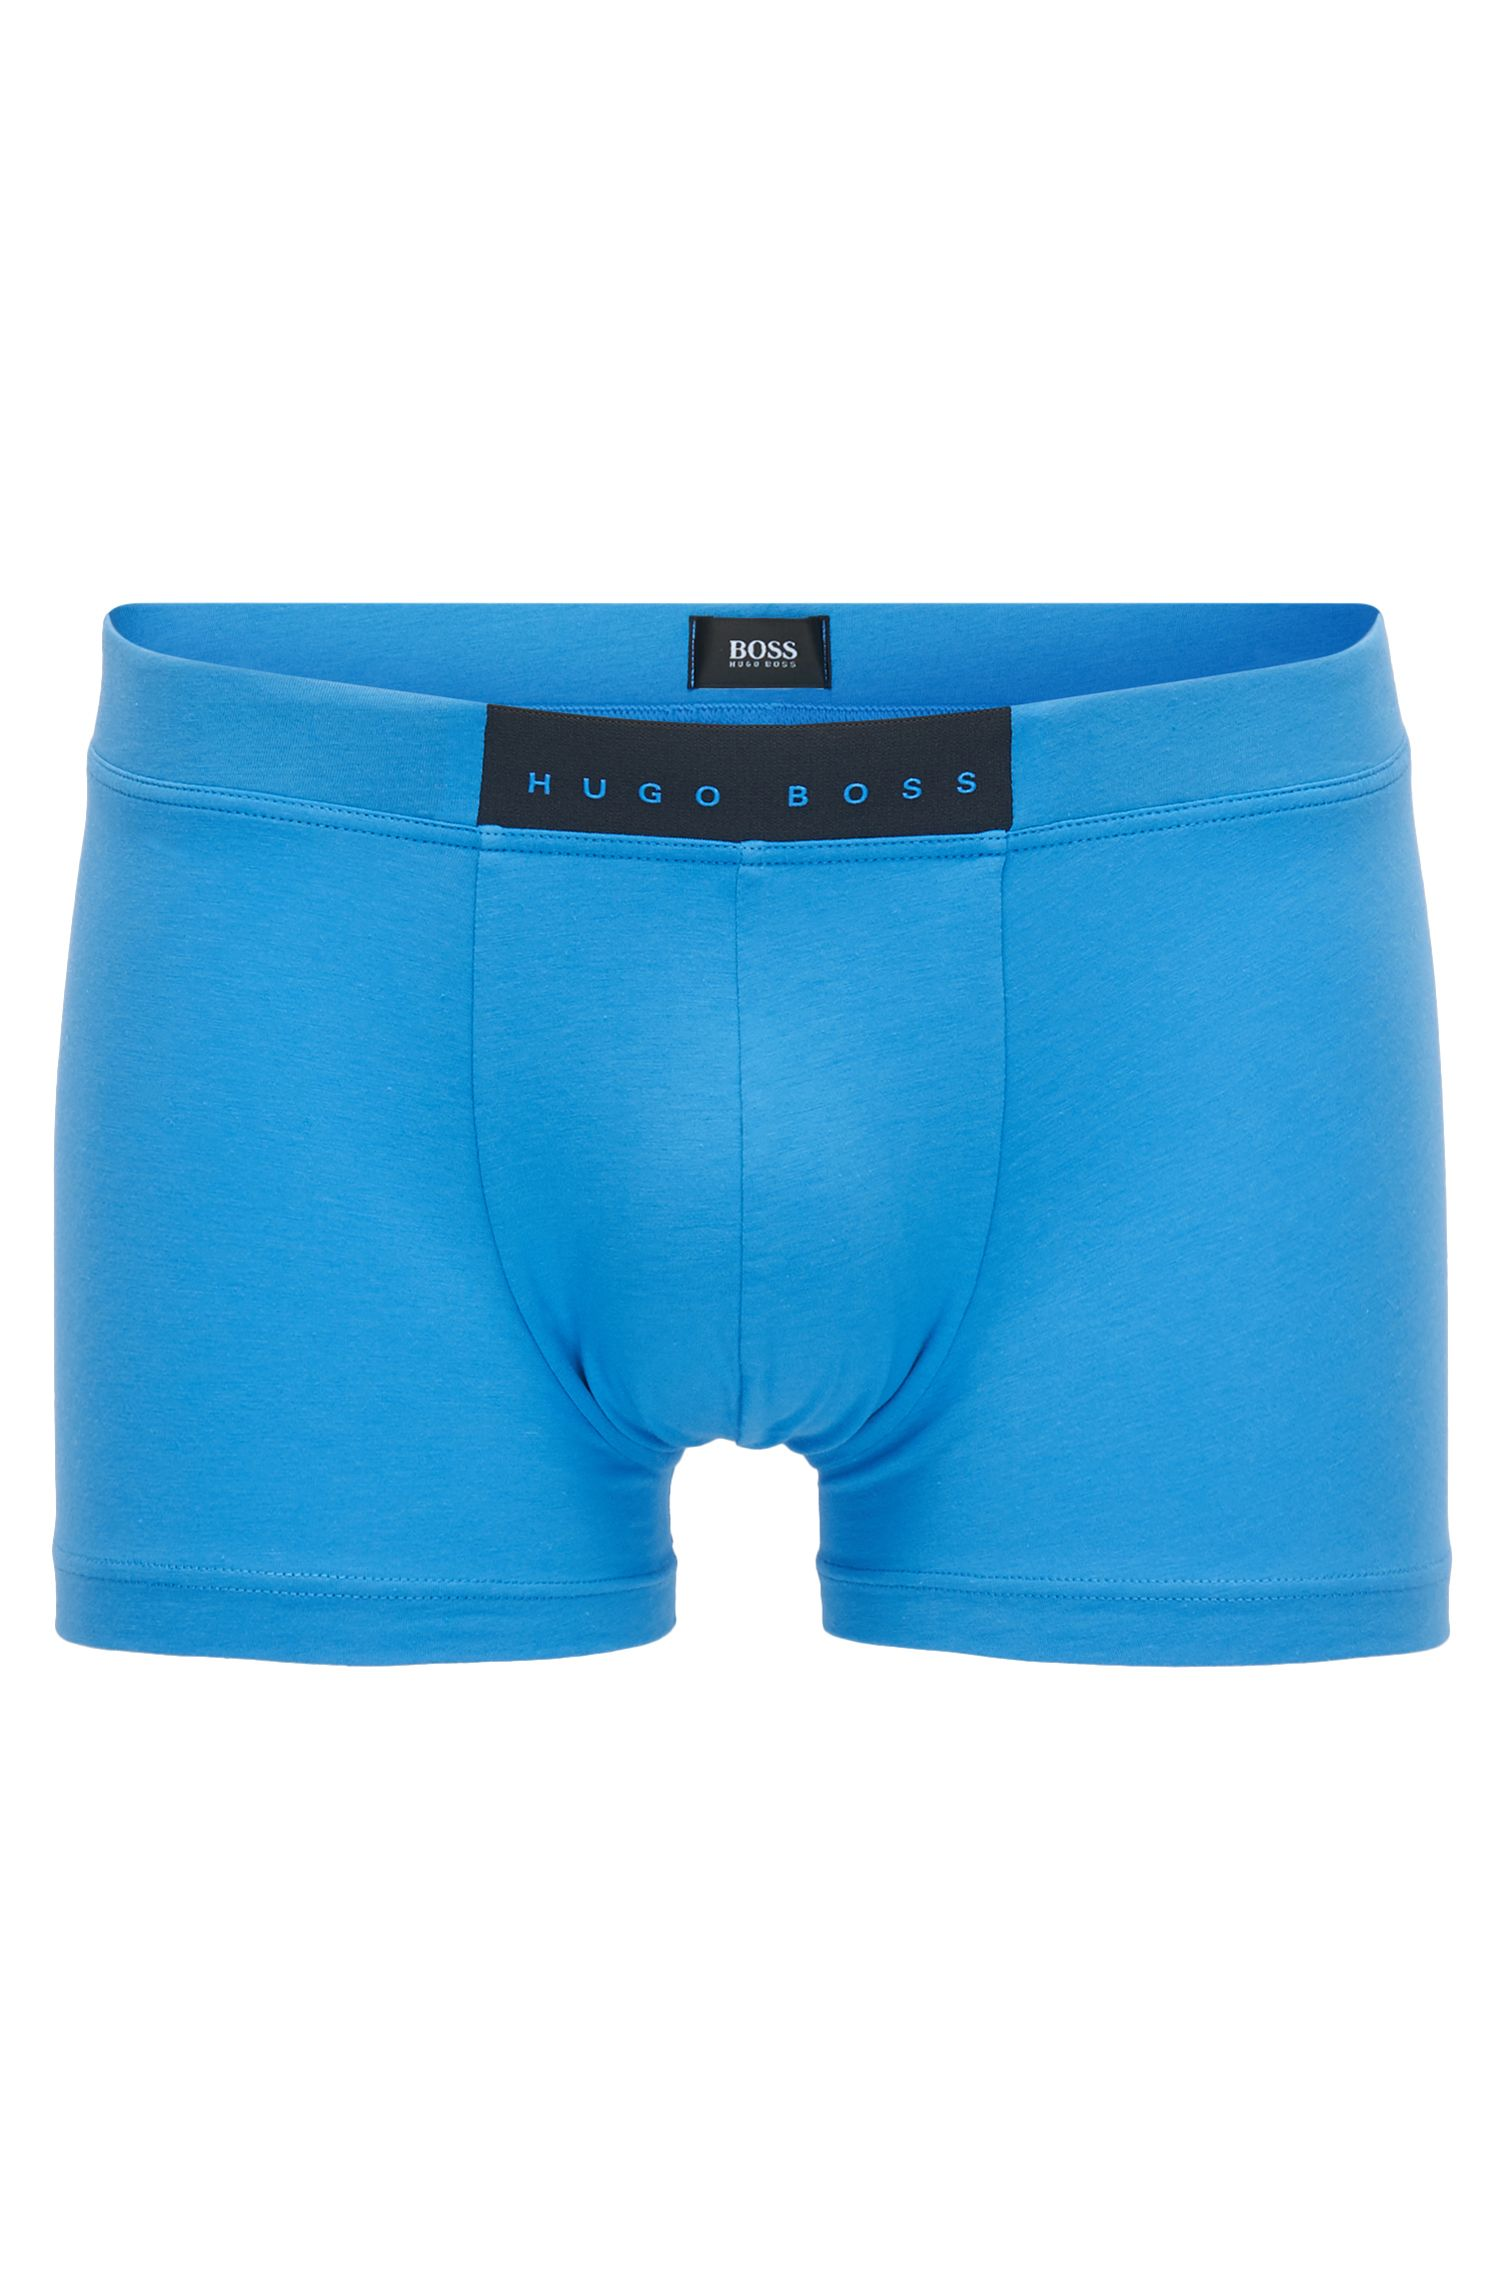 Regular-rise stretch trunks with rubberised logo